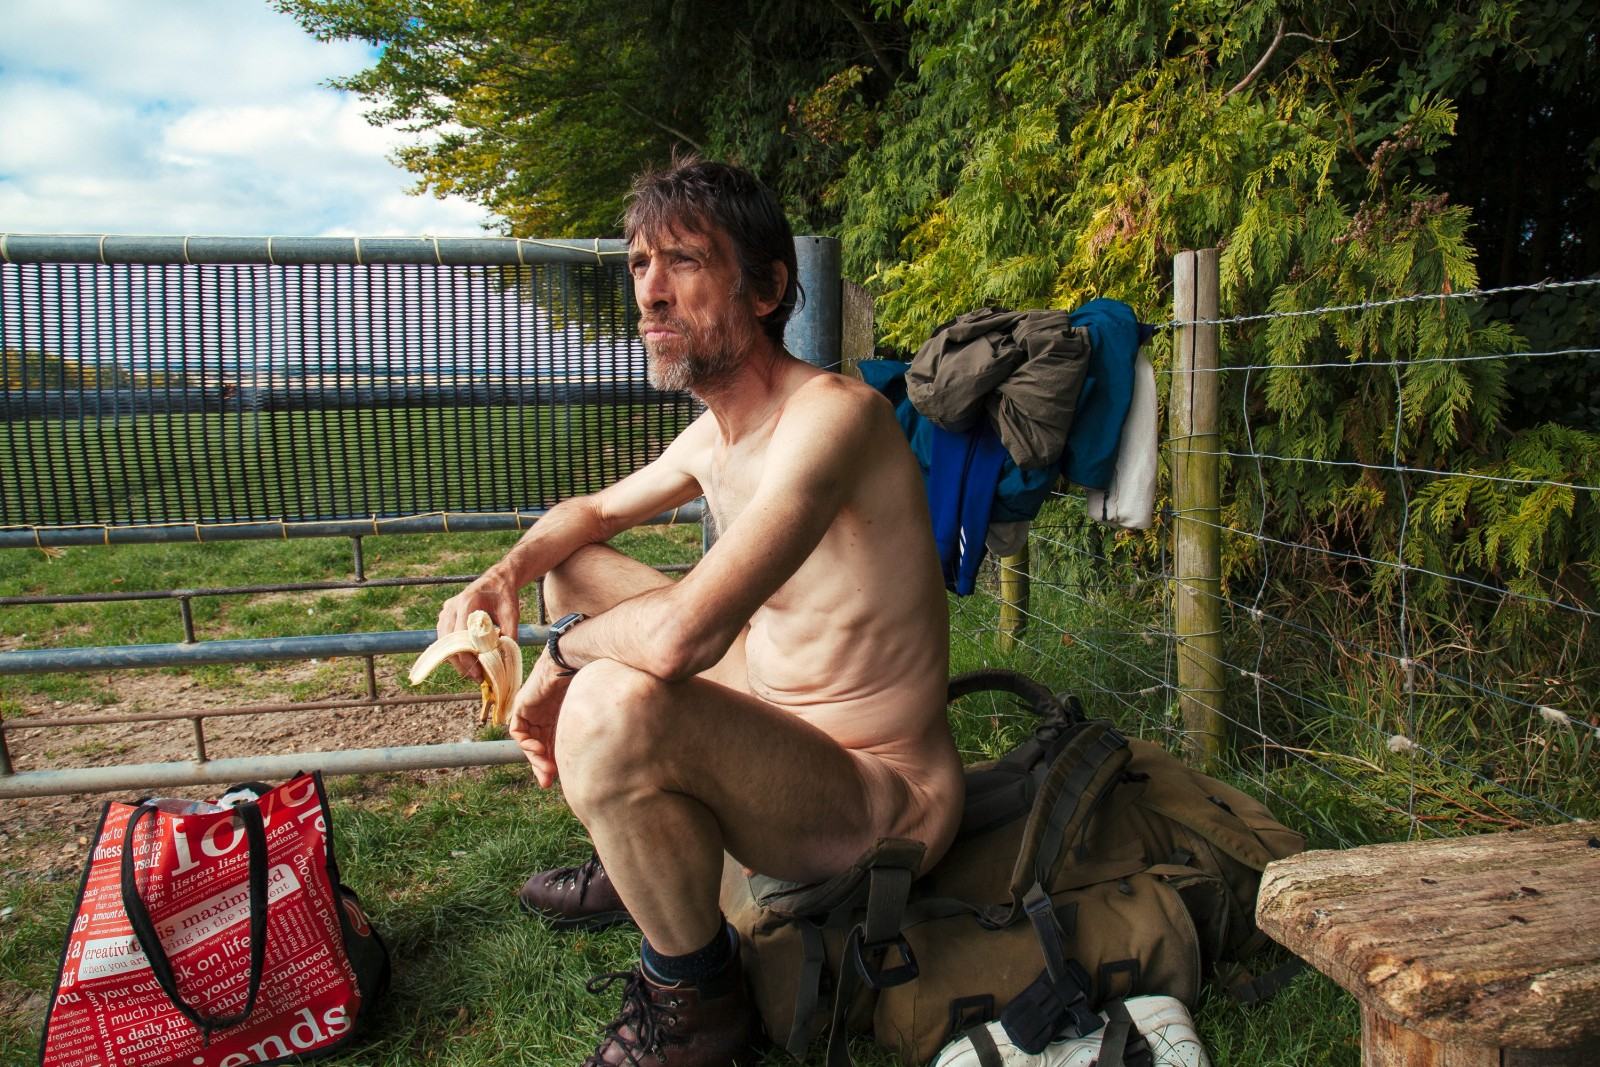 'Naked Rambler' arrested again for nude stroll just weeks after prison release